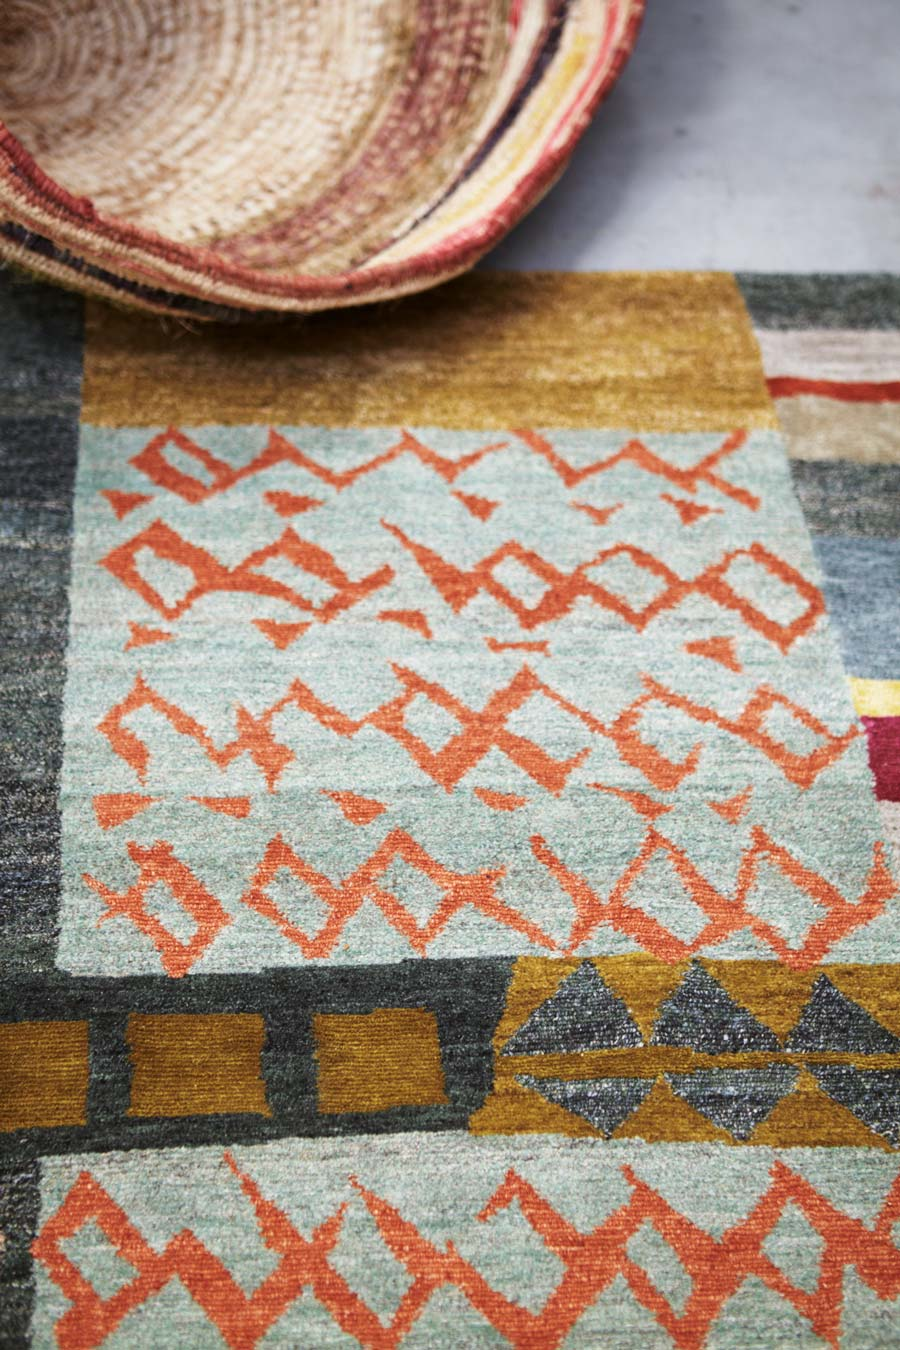 Detailed image of patchwork Memory rug by Hare and Klein